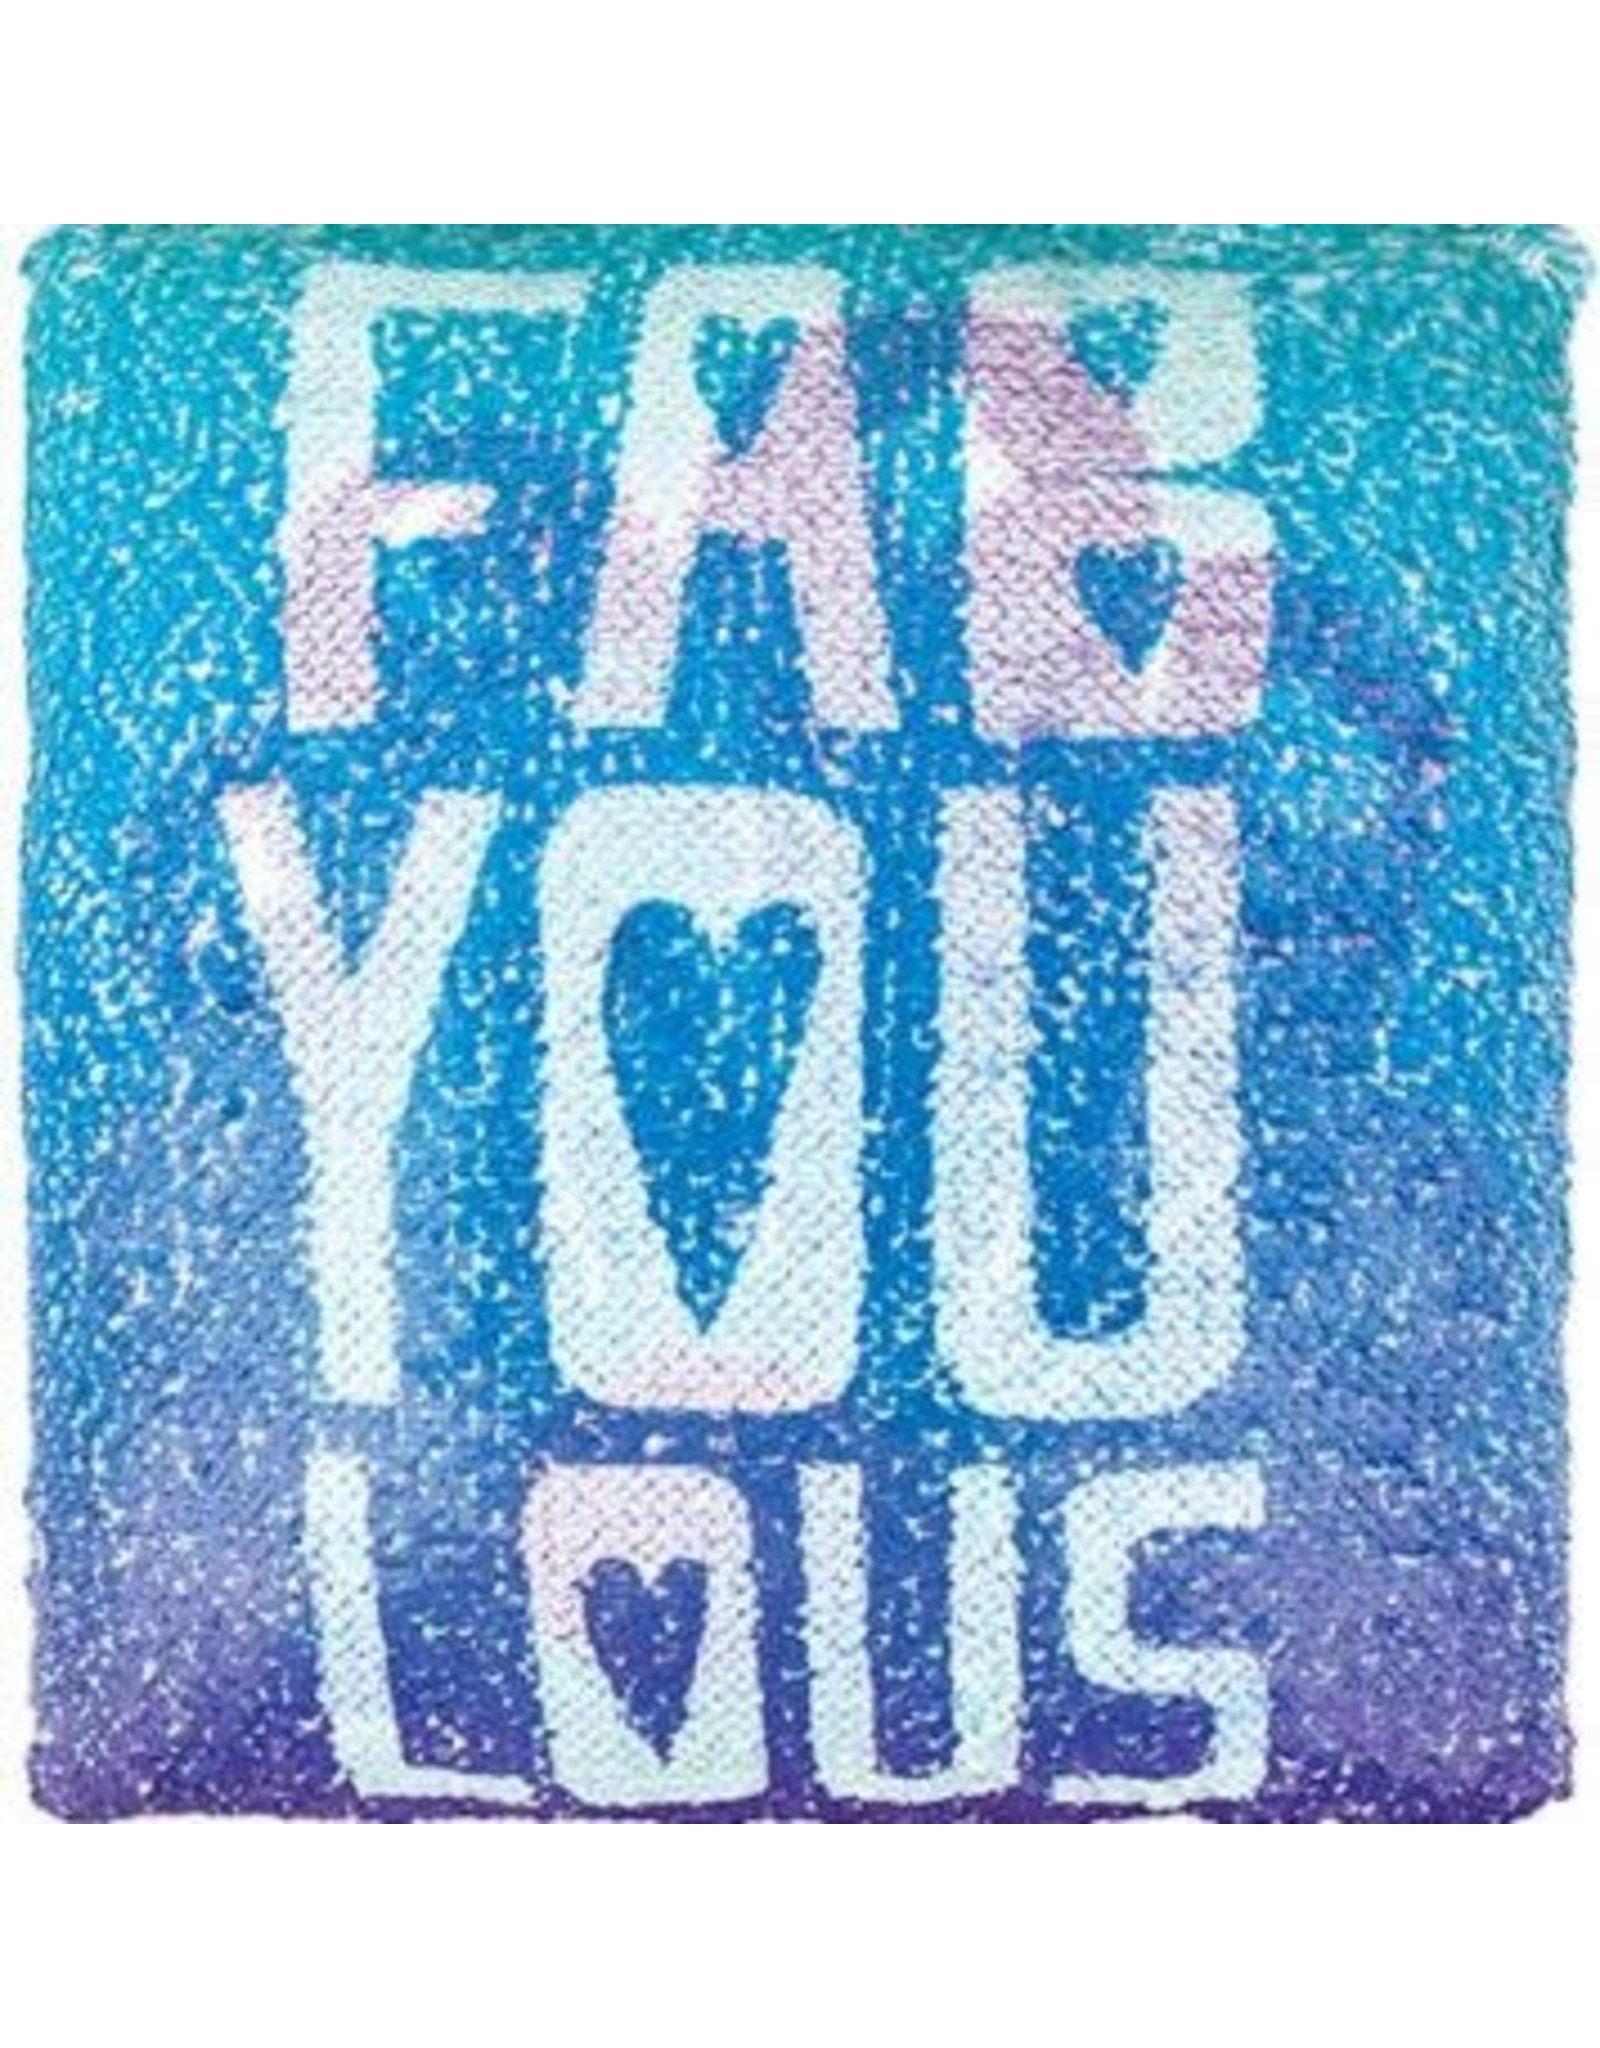 Fashion Angels Magic Sequin Printed Pillow, FAB-YOU-LOUS